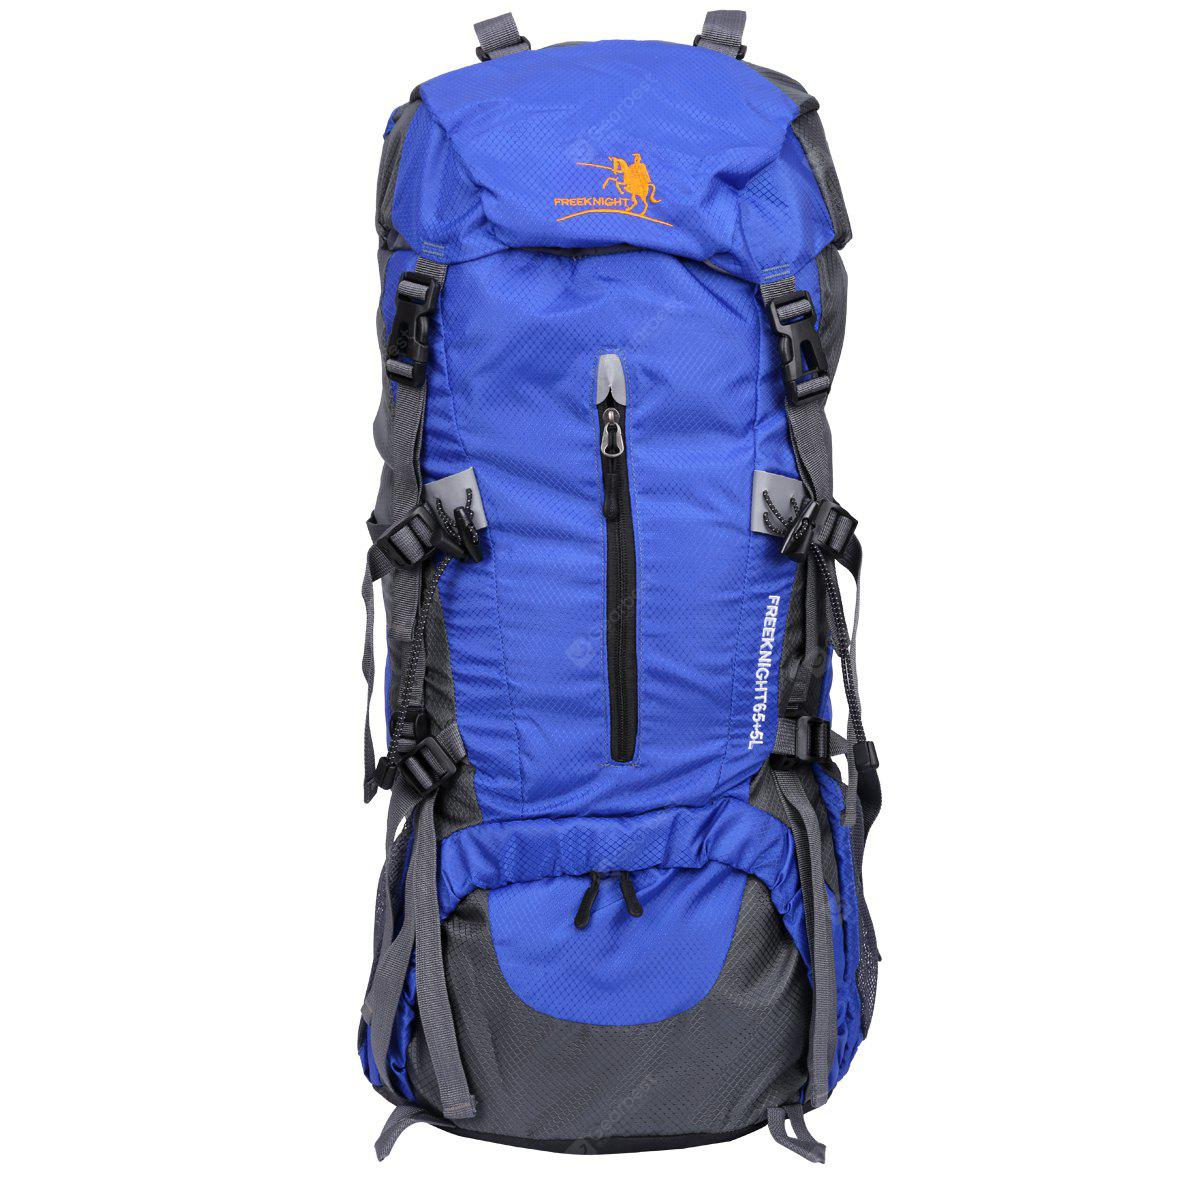 Travel Rucksack Free Knight 65l Camping Travel Rucksack Water Resistant Mountaineering Outdoor Backpack Hiking Bag